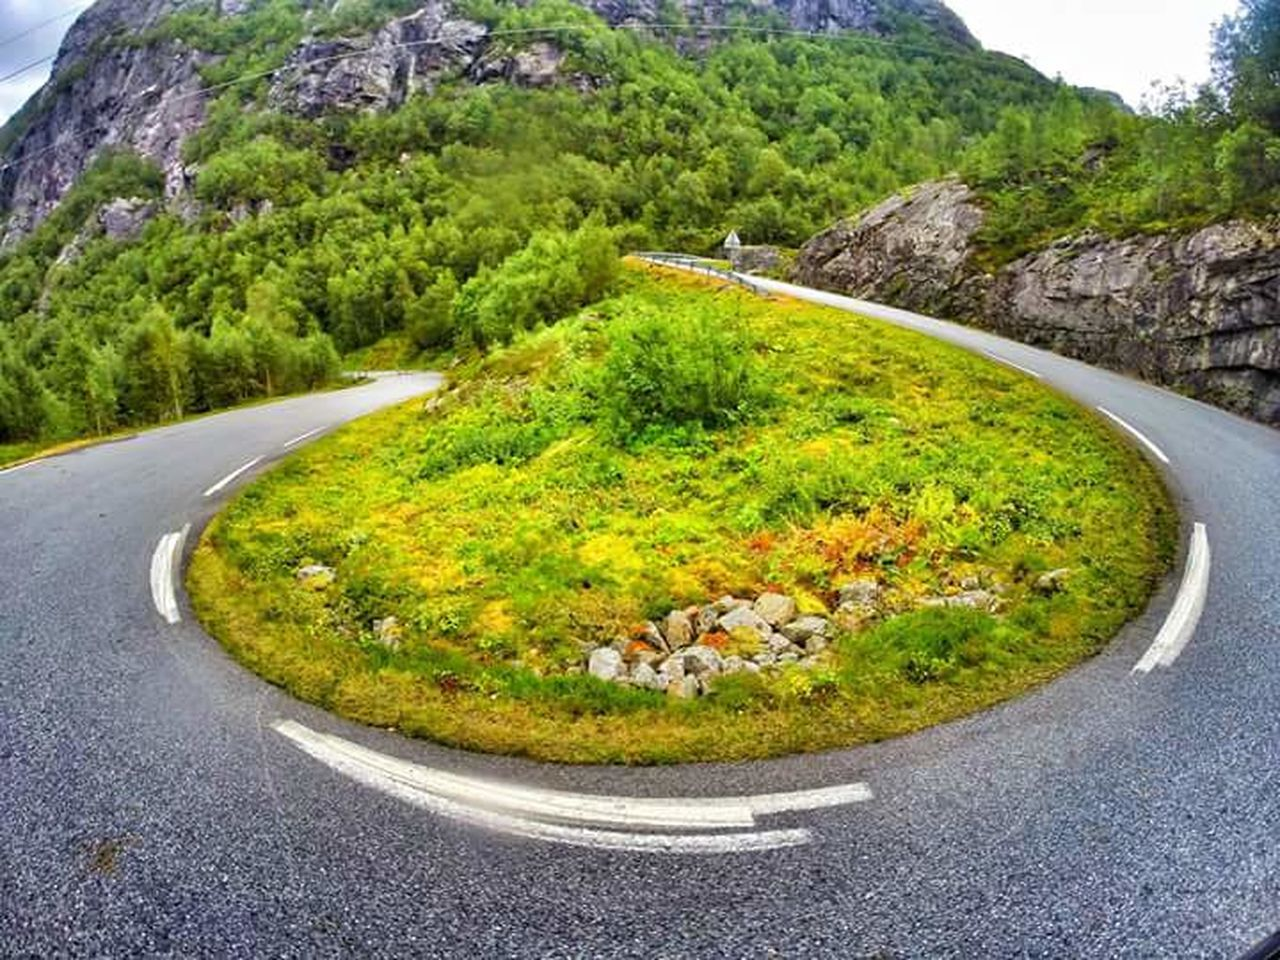 Green Color Road Traffic Circle Outdoors Scenics Landscape Winding Road Norway Norge Lysebotn Lysefjord Road Gopro Eyemphotography Travel Photography Aroundtheworld Traveladdict Goprophotography Roadscenes Roadsidephotography Tourism